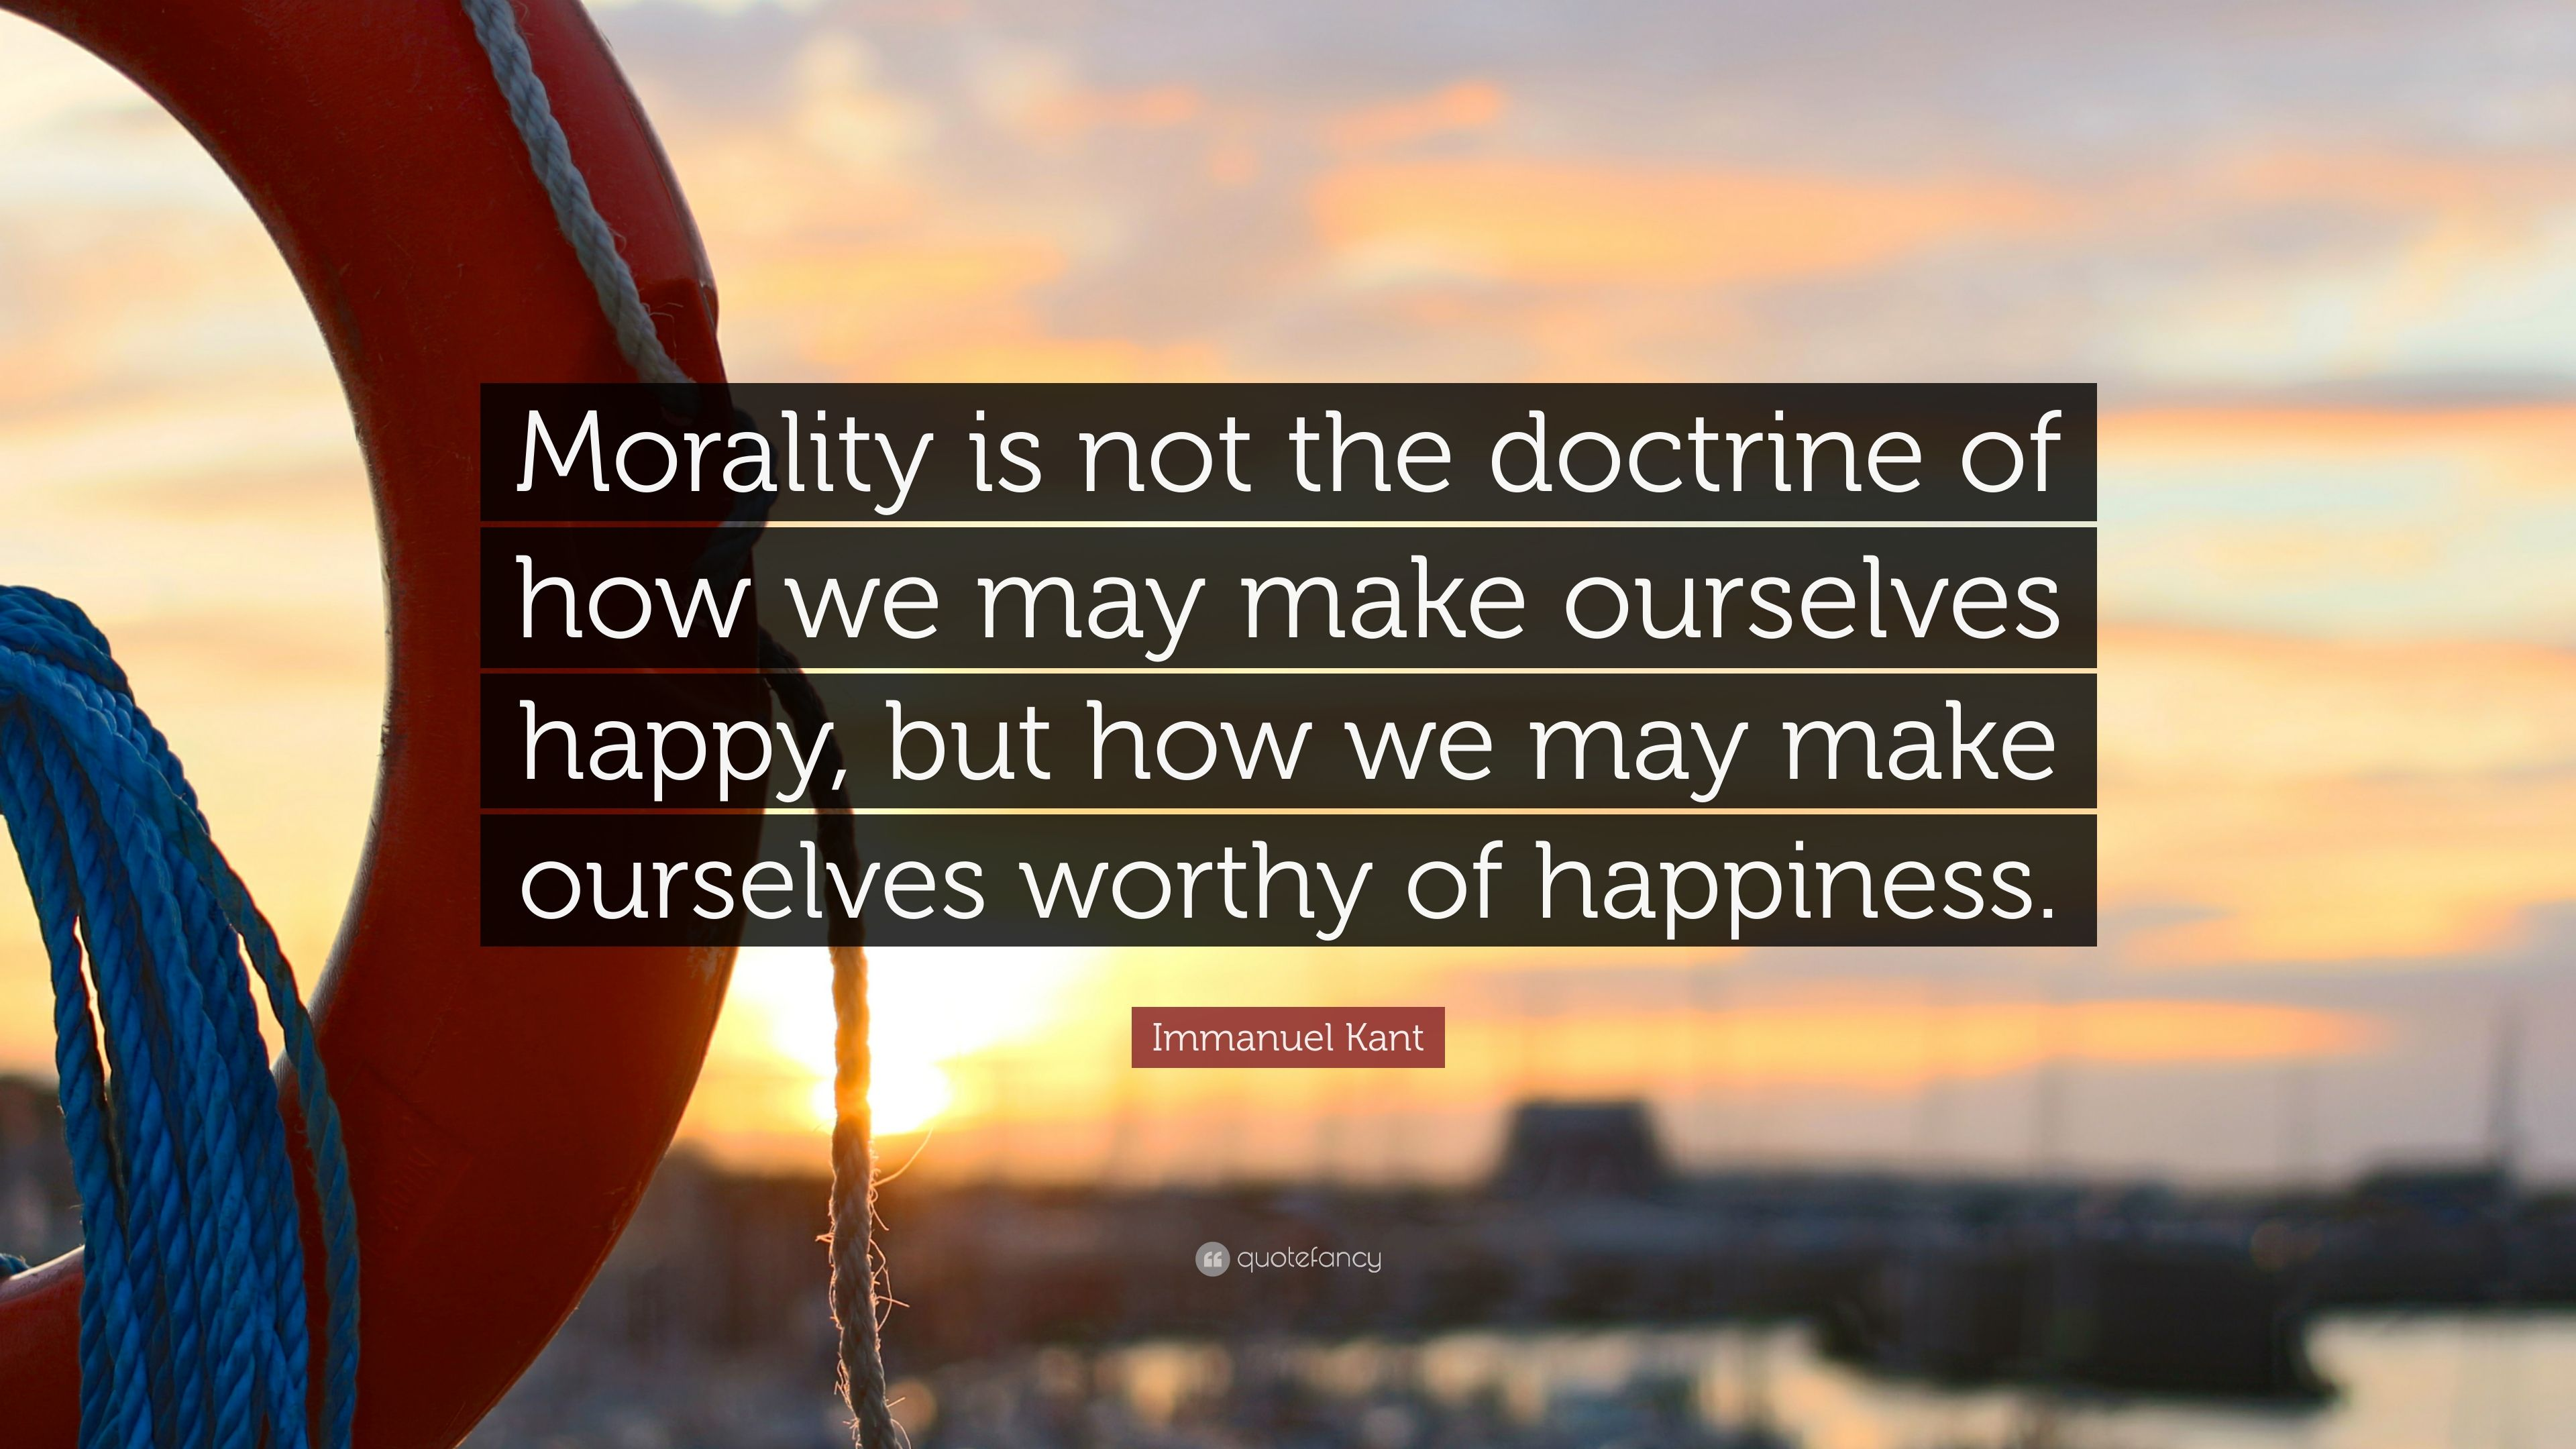 Immanuel Kant Quote Wallpaper Immanuel Kant Quote Morality Is Not The Doctrine Of How